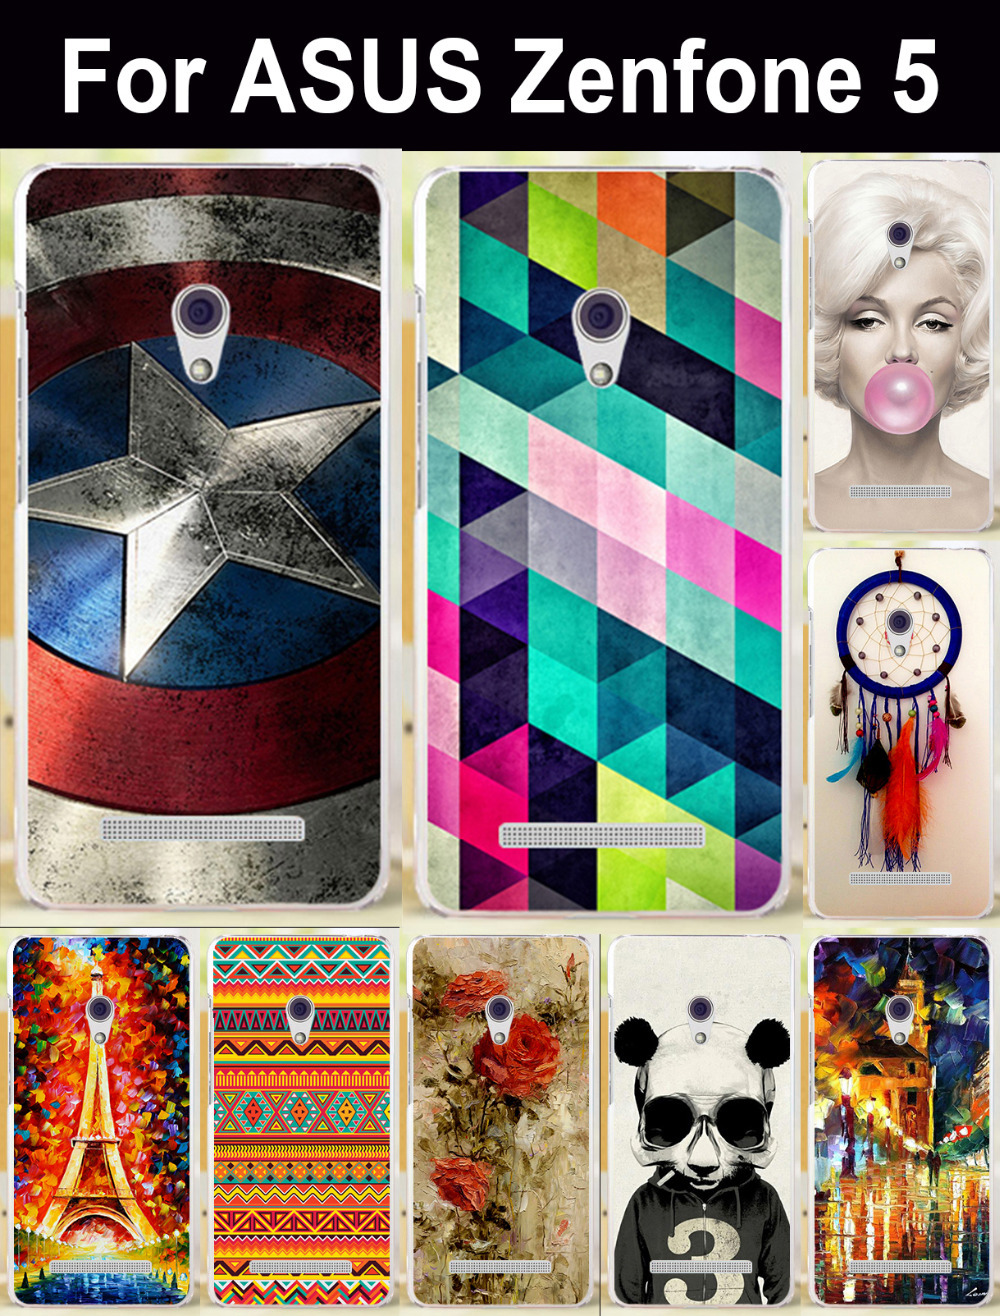 Newest colorful High quality mobile phone case protective case hard Back cover Case for ASUS Zenfone 5 Cellphone Cases Bags Hood(China (Mainland))